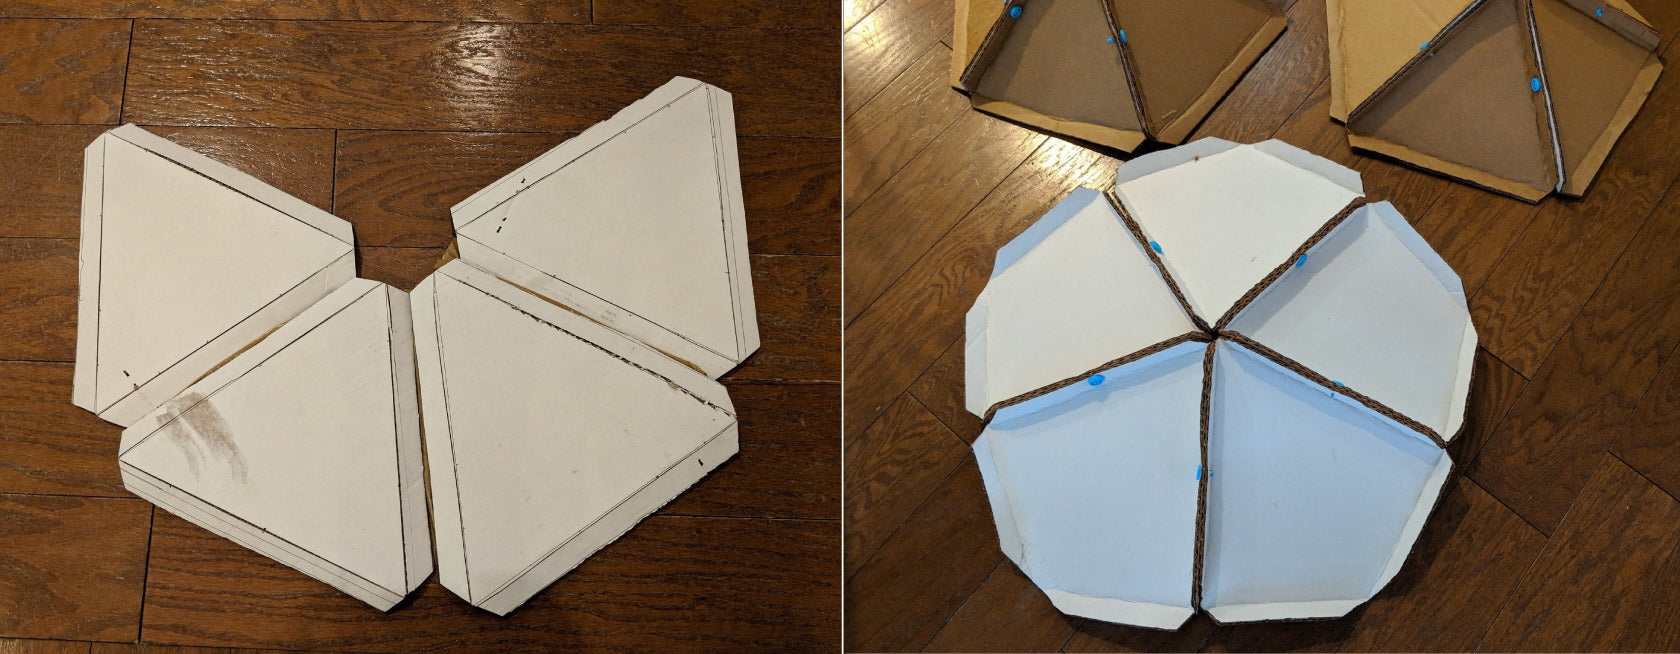 Makedo cardboard geo dome segments construction process